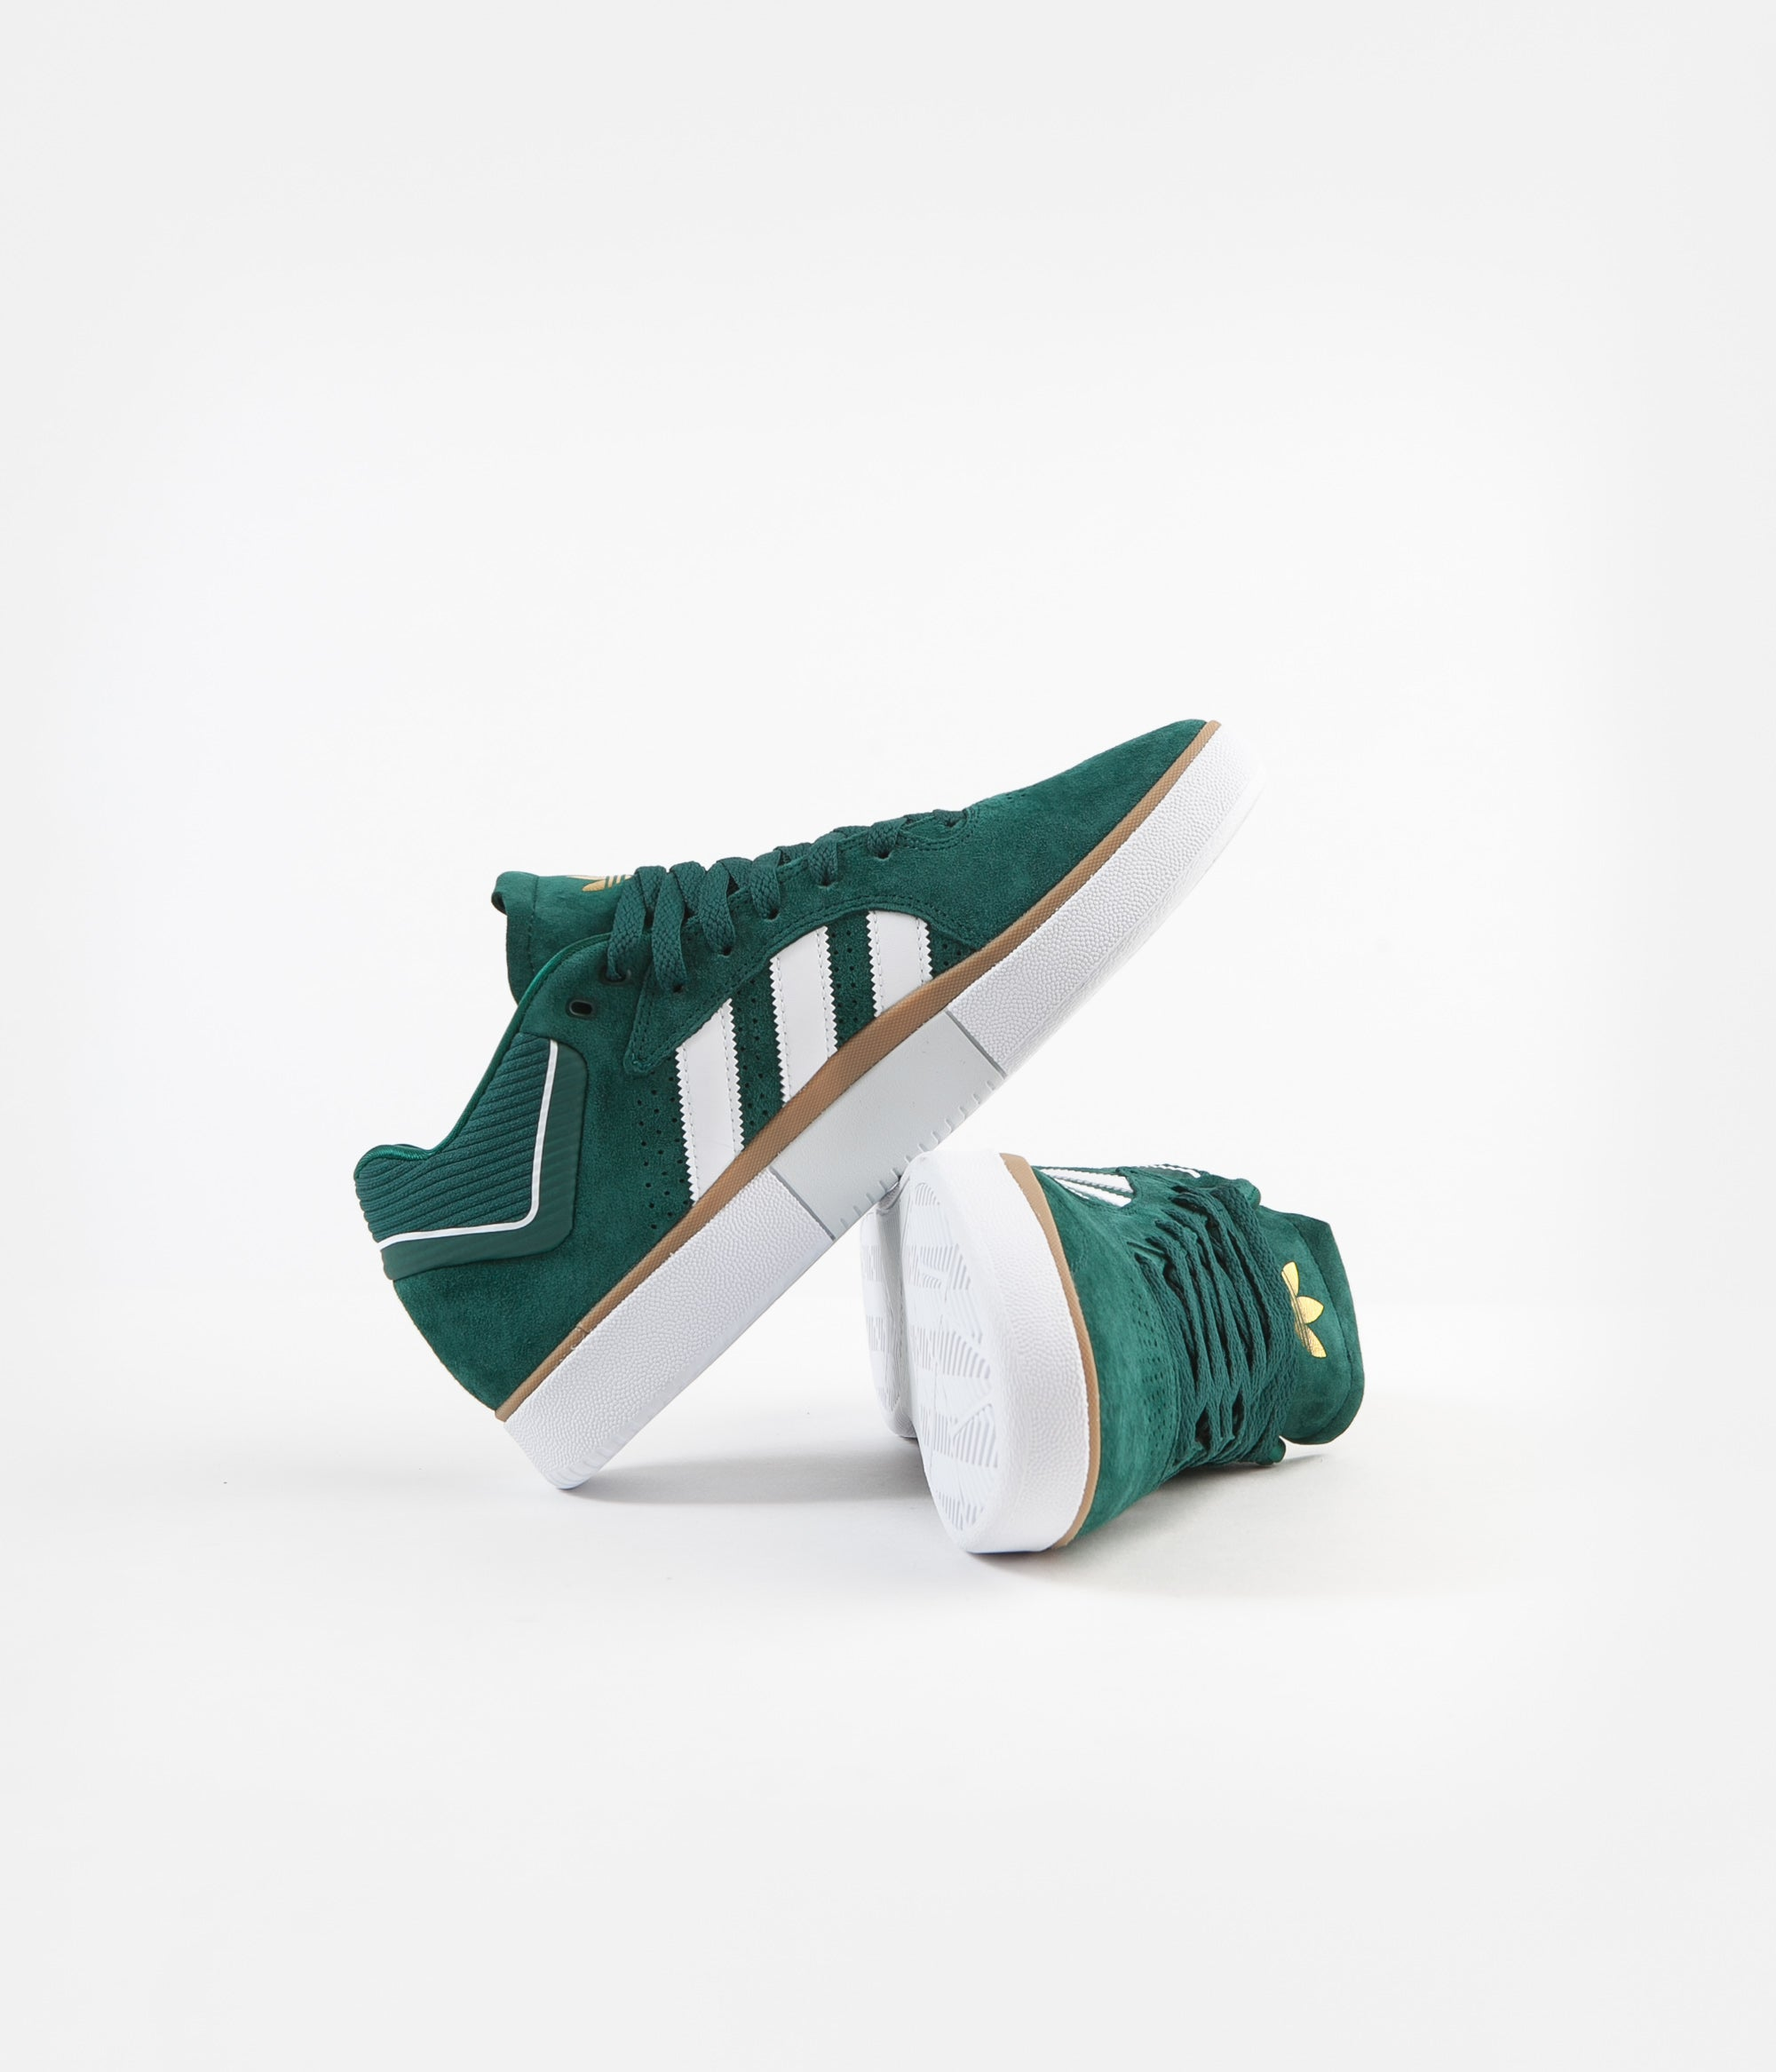 Adidas Tyshawn Shoes - Collegiate Green / White / Gum4